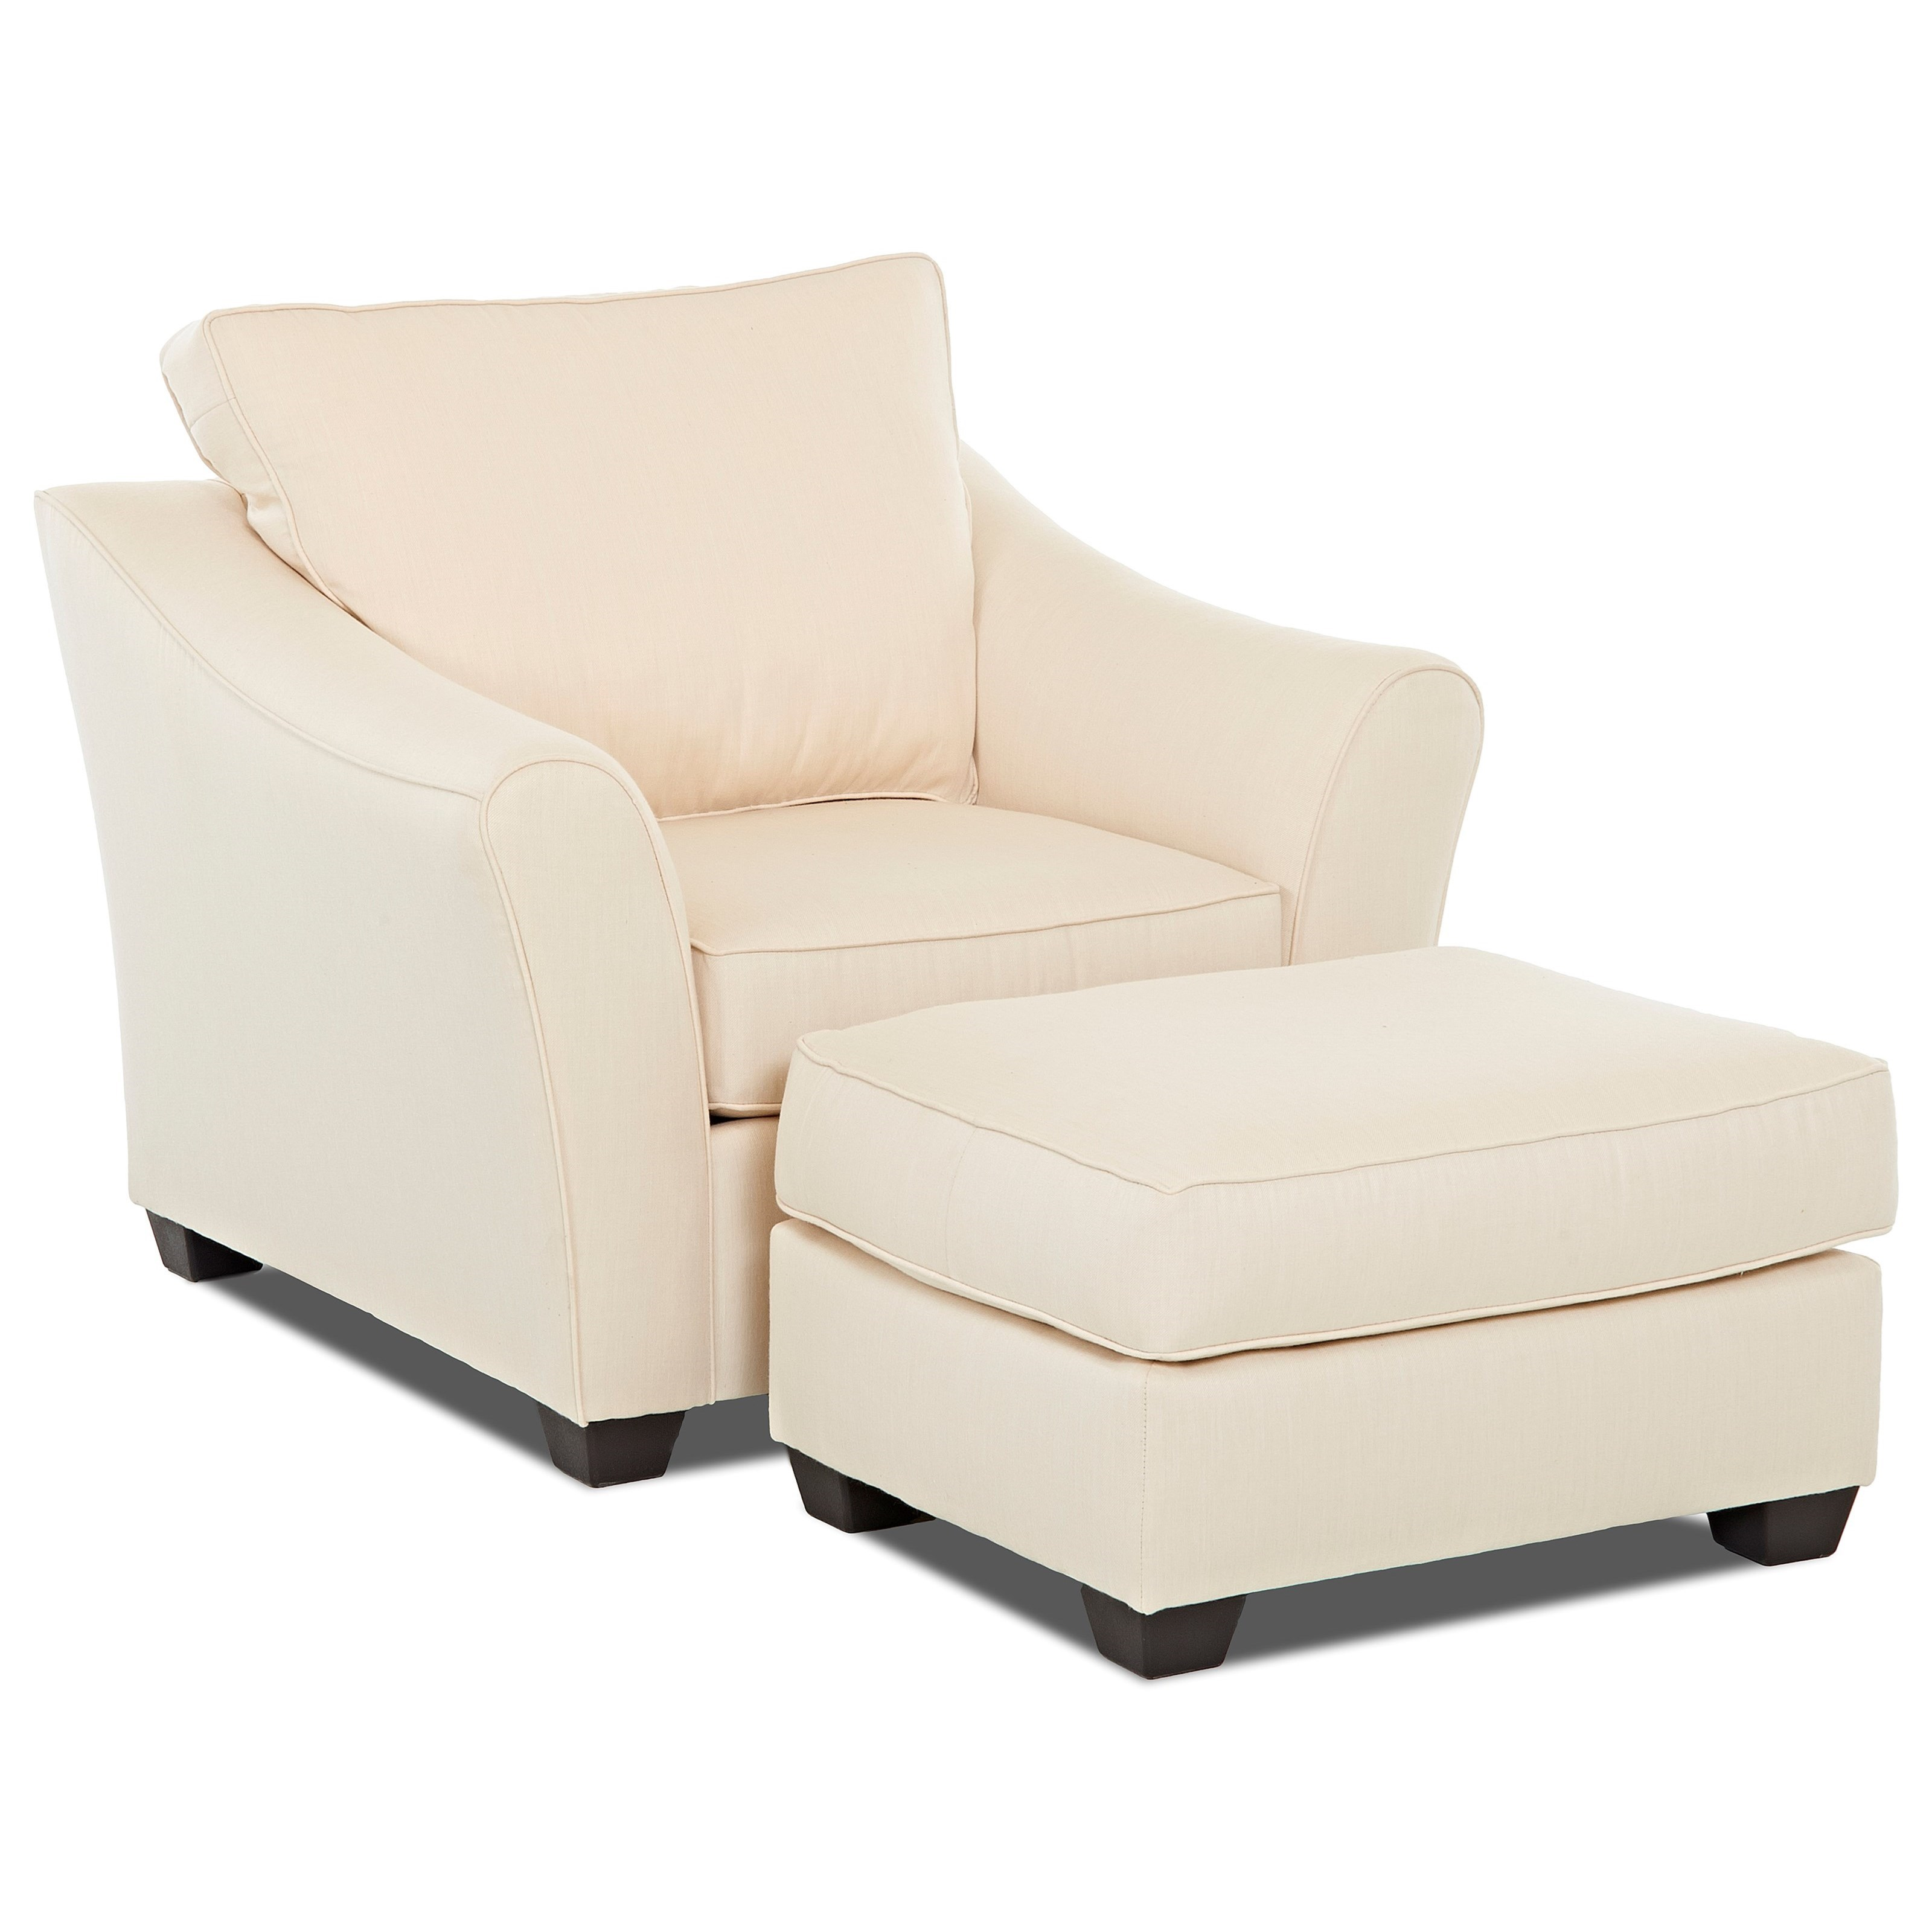 Klaussner Linville Chair & Ottoman Set - Item Number: K80400 C+OTTO-FLAGSHIP VELLUM